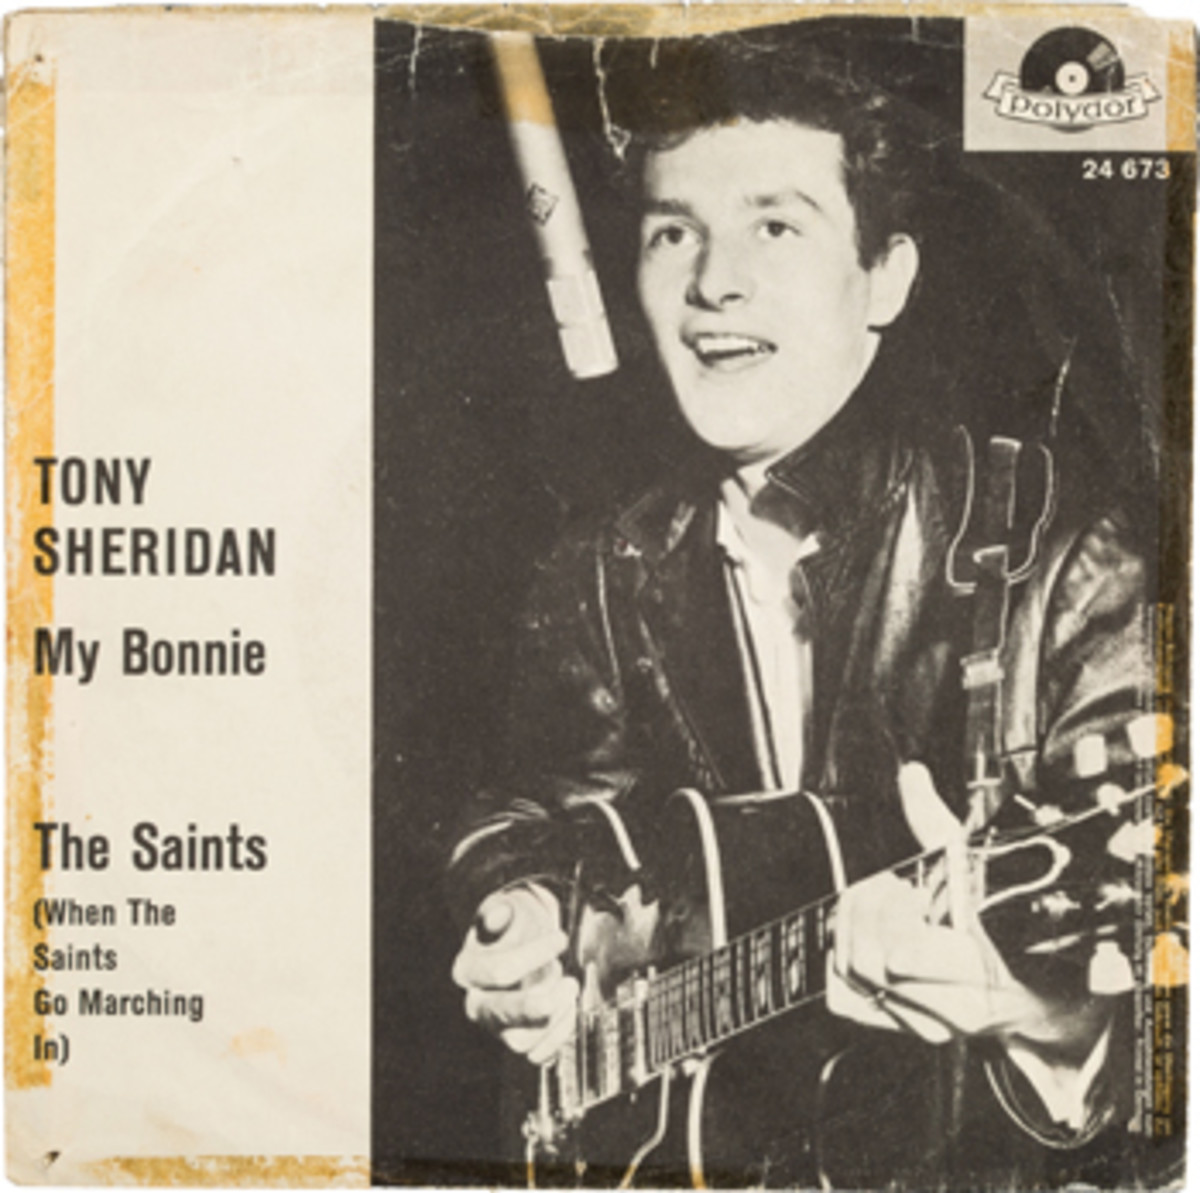 Beatles-Tony Sheridan & The Beat Brothers My Bonnie The Saints German 45 with Picture Sleeve (Polydor NH 24 673, 1962)-2